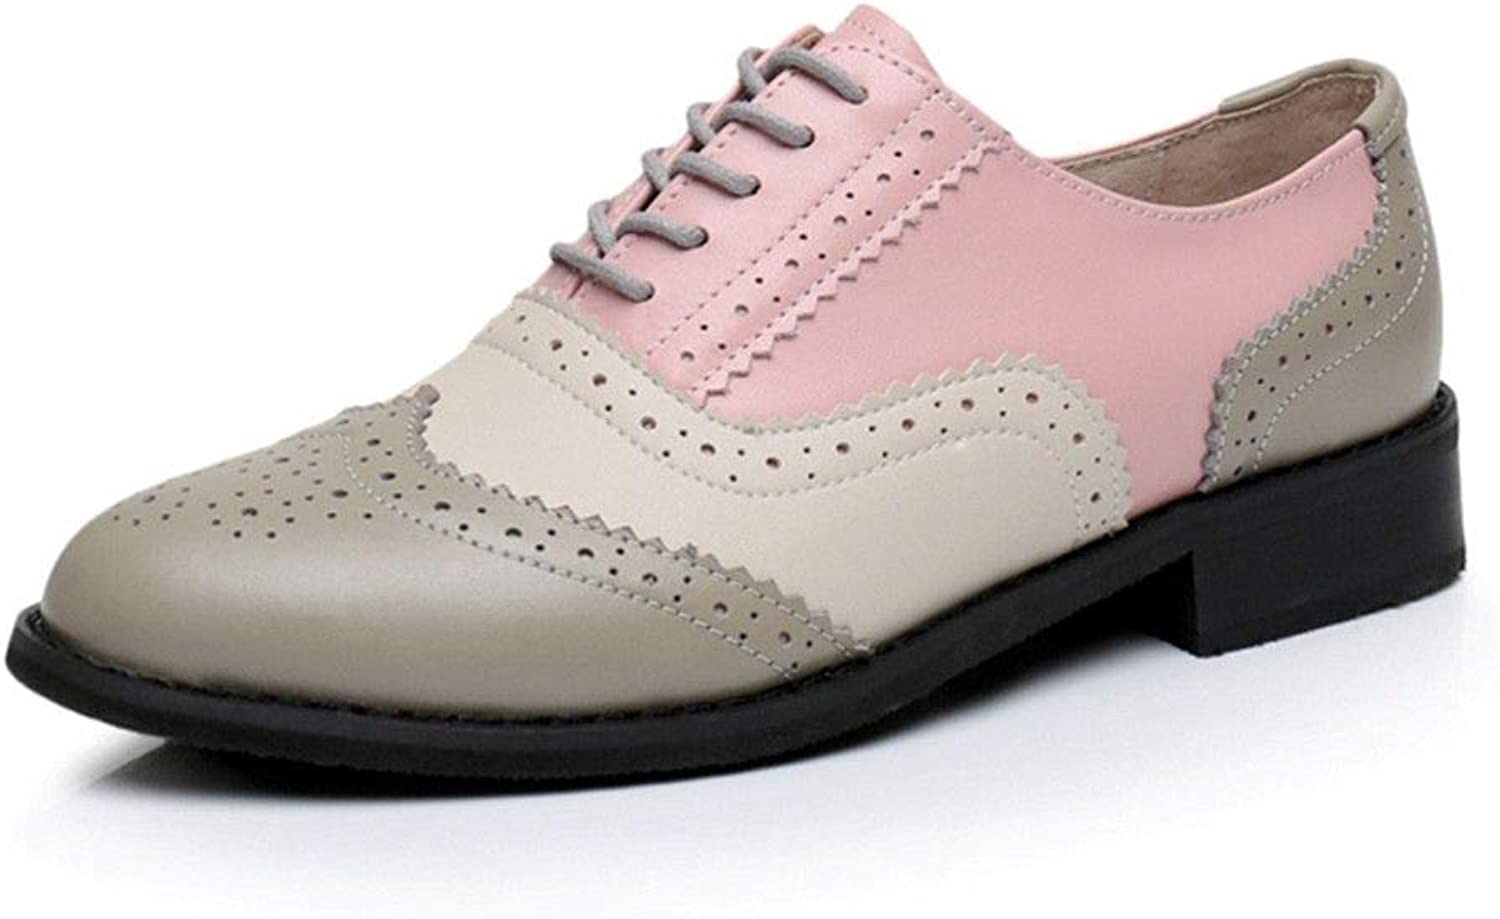 Sam Look Spring shoes Women Oxford Flat for Woman Genuine Leather Flats Summer Brogues Pink 5.5 M US